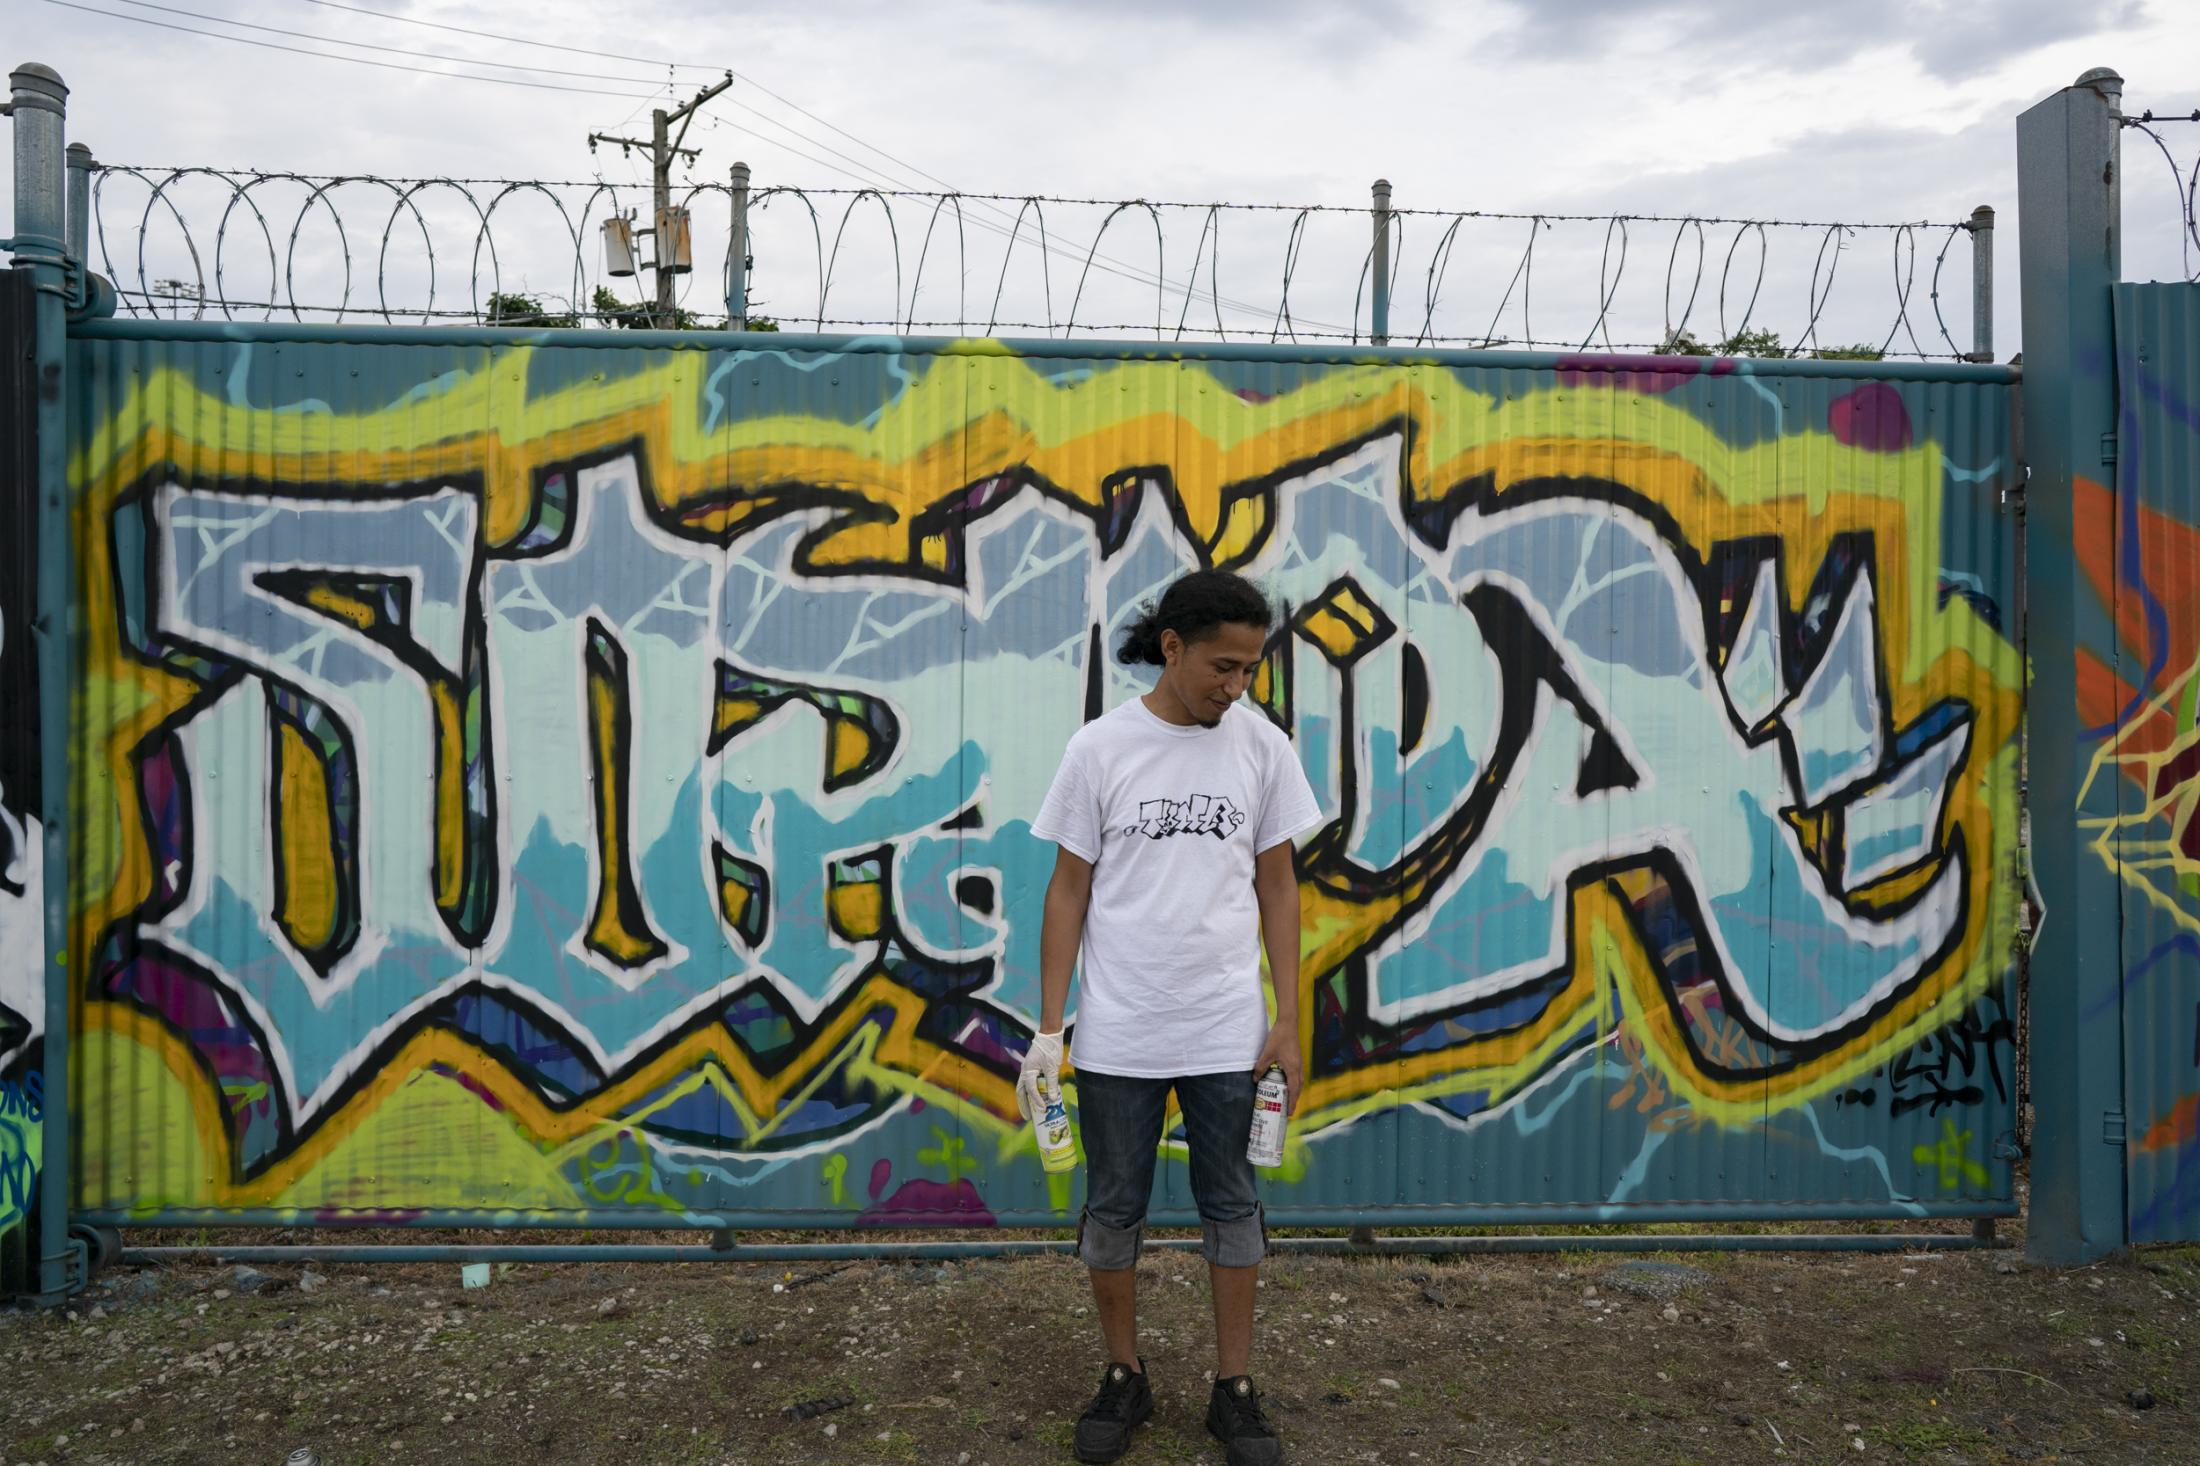 "Pedro Meza stands next to a piece he painted across the street from the Cook County Jail during the Meeting of Style graffiti art event in Chicago. Meza said he lost custody of his now 6-year-old daughter, Sophia, after his divorce six years ago. Over the past three years, Meza has painted her name around his neighborhood to honor her. ""This is what I can do for her,"" he said. ""Maybe someday she'll know."""